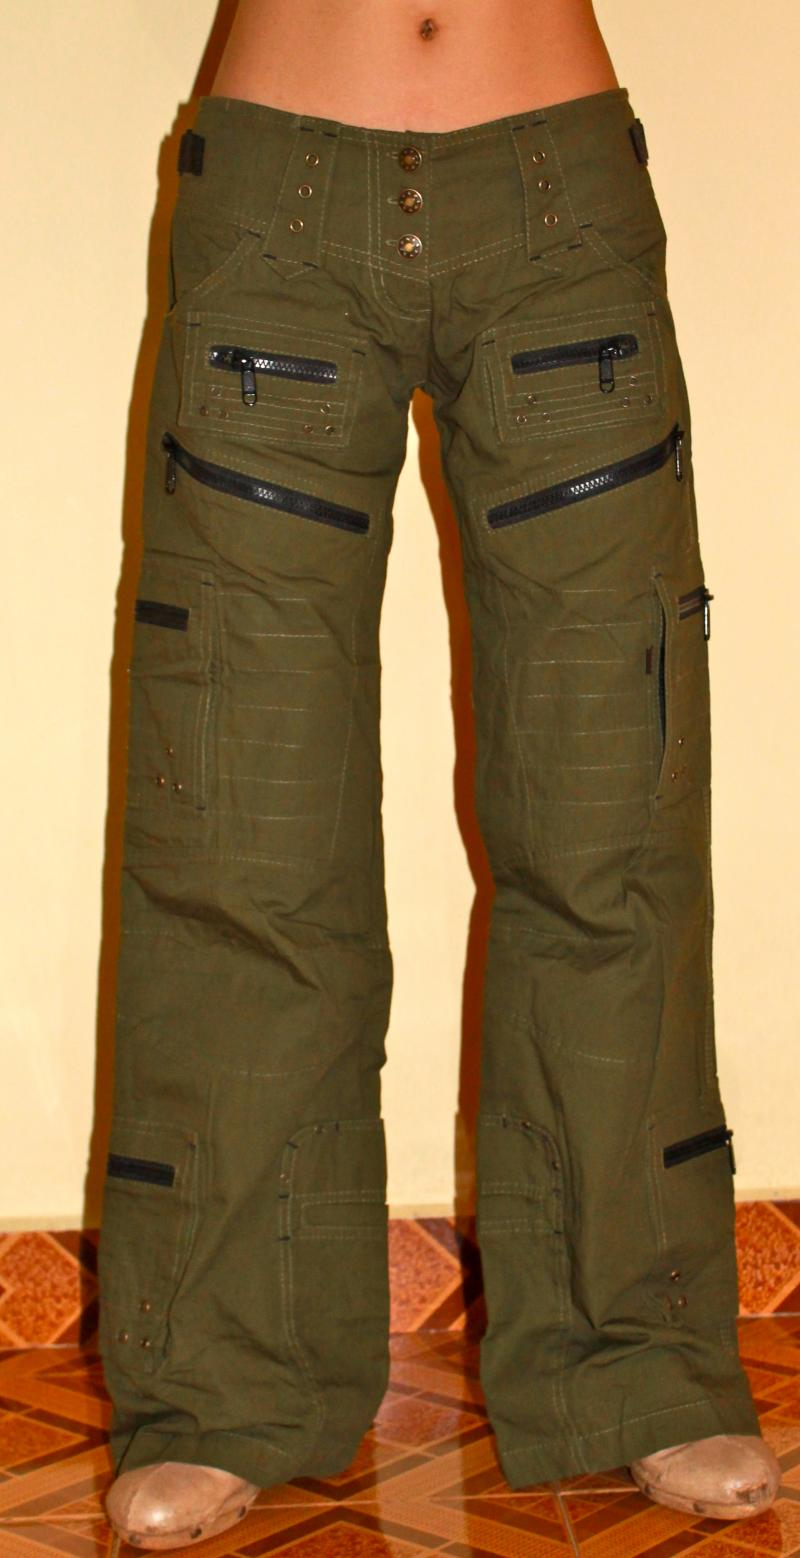 Awesome There Are Undoubtedly A Handful Of Closet Staples That Work For A Majority Of Women Across All Ages  First Up This Season Army Green Cargo Pants Each Fall, My Army Green Cargo Pants Become Such A Fresh Change From Either